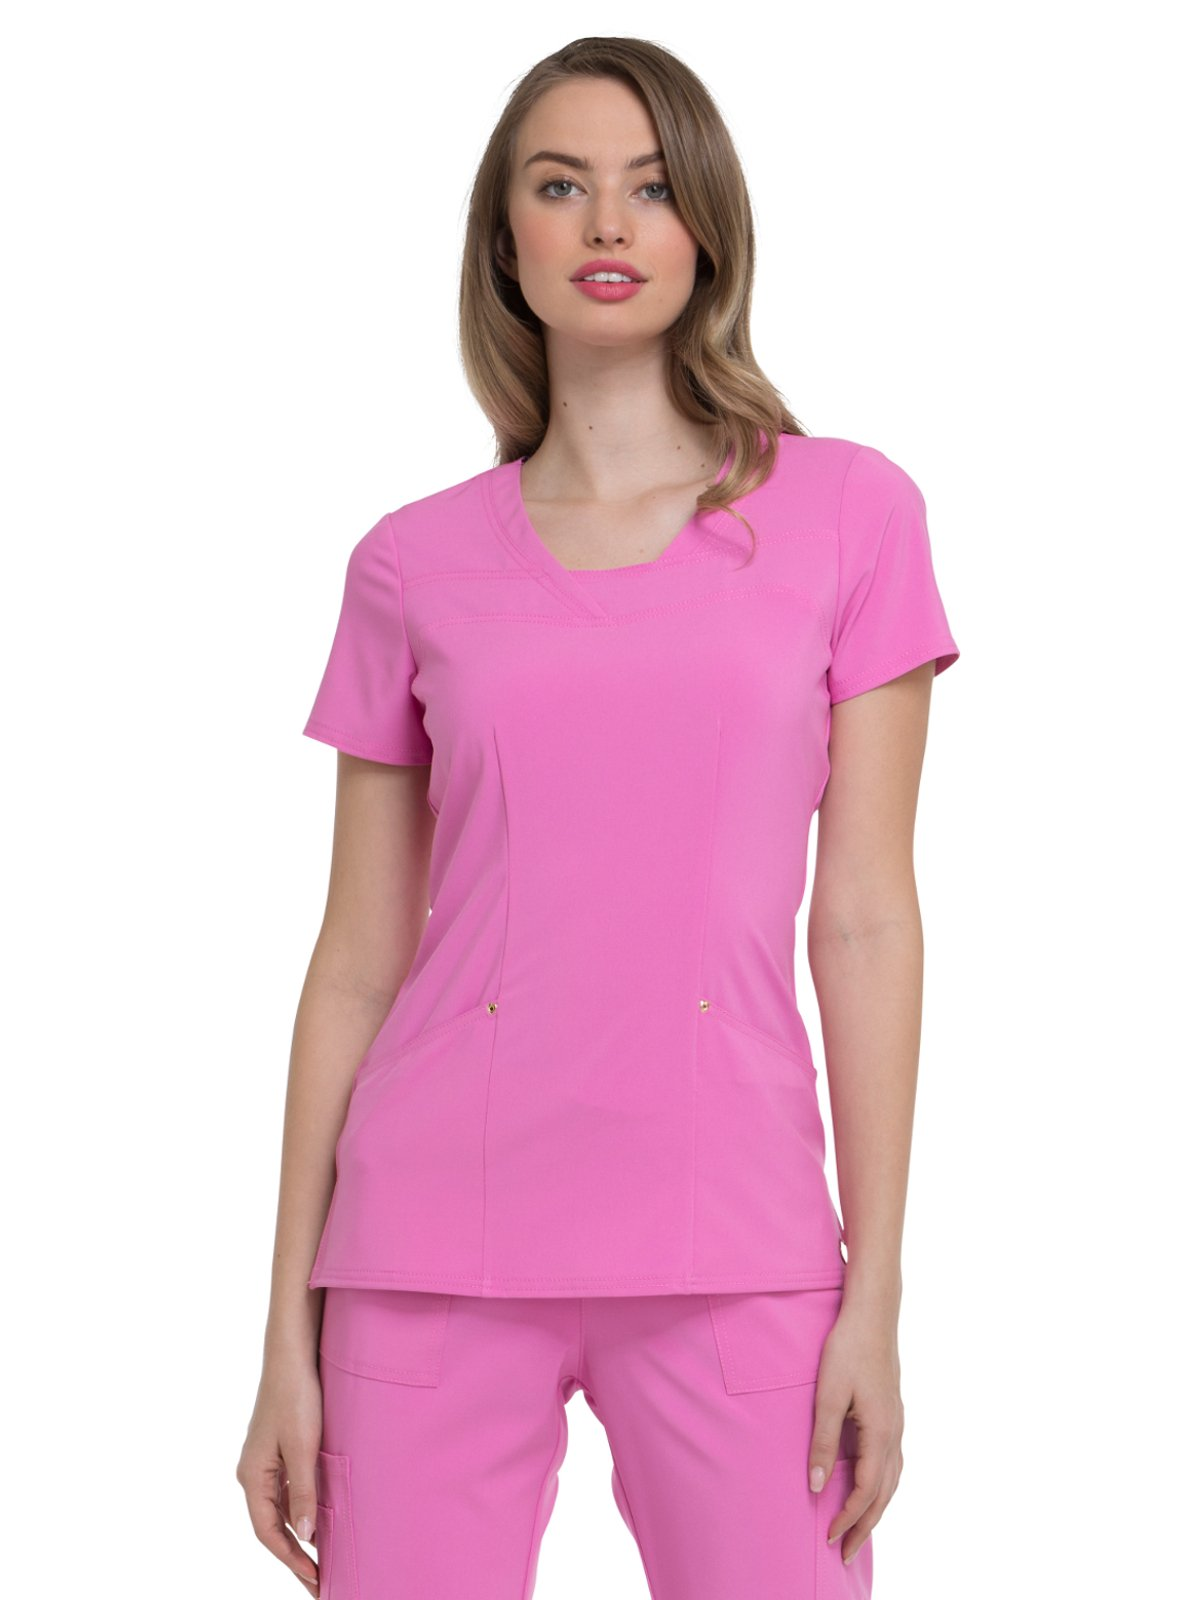 HeartSoul Love Always by Women's V-Neck Solid Scrub Top XX-Small Pink Me up